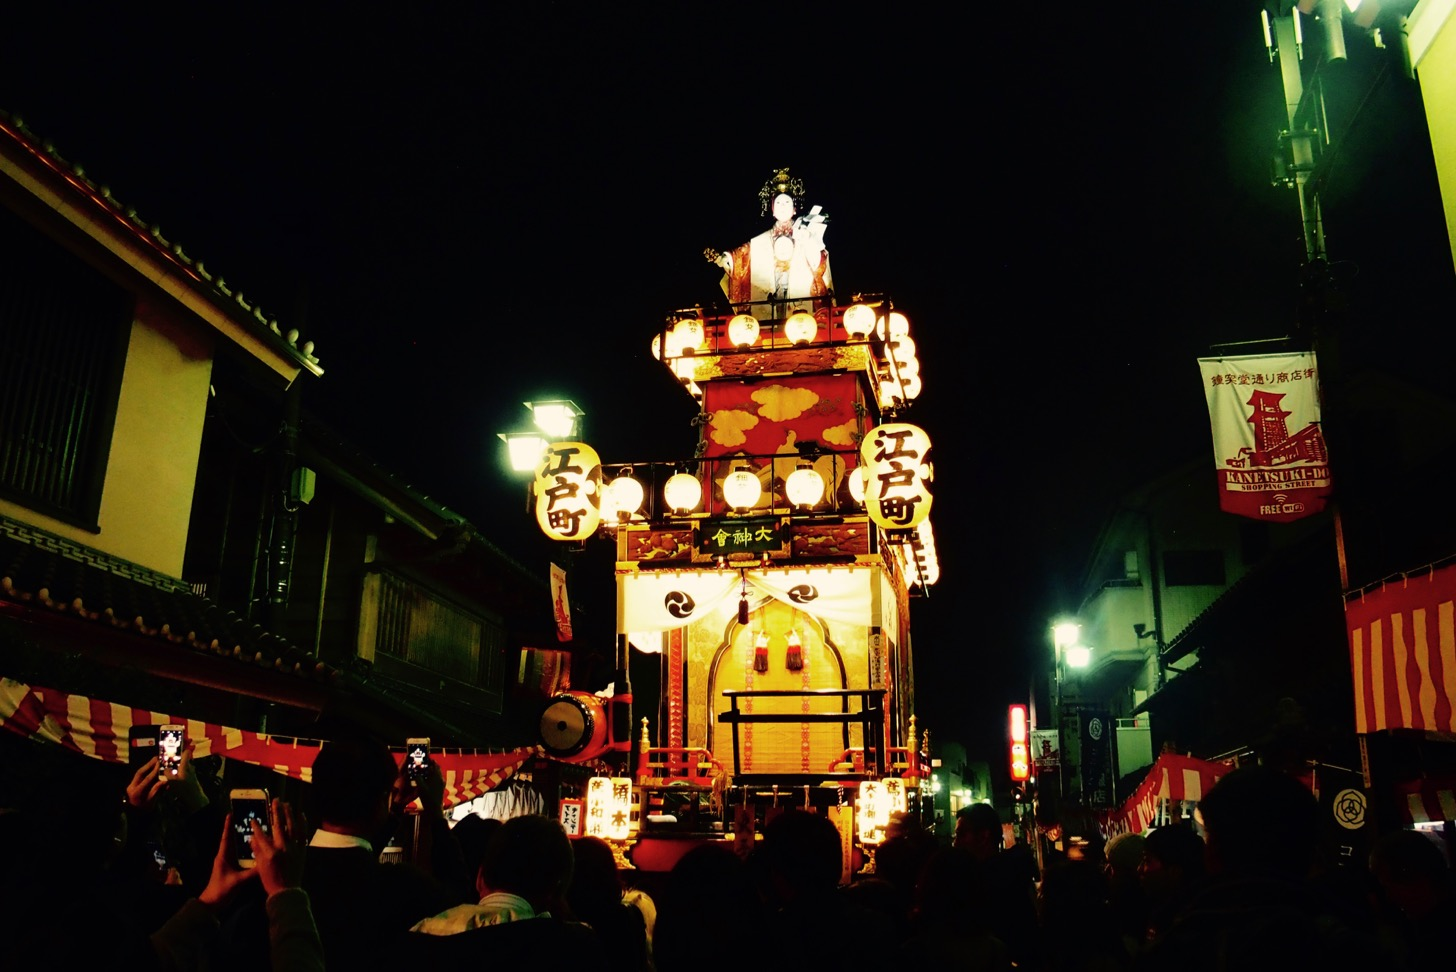 [Kawagoe Festival XNUM X] Sanpo while watching the fantastic festival registered as a UNESCO intangible cultural heritage